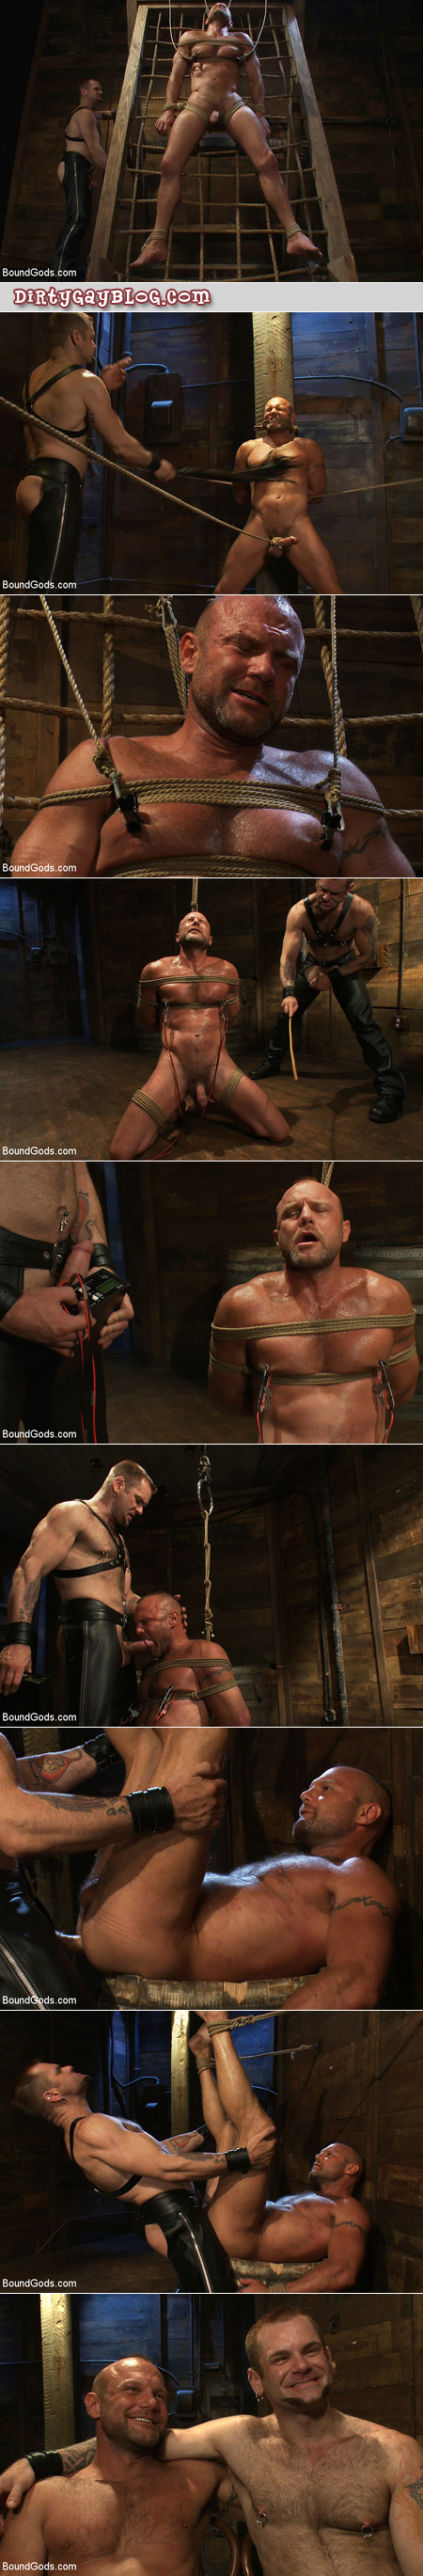 Macho hairy leathermen use gay bondage and e-stim to get off.